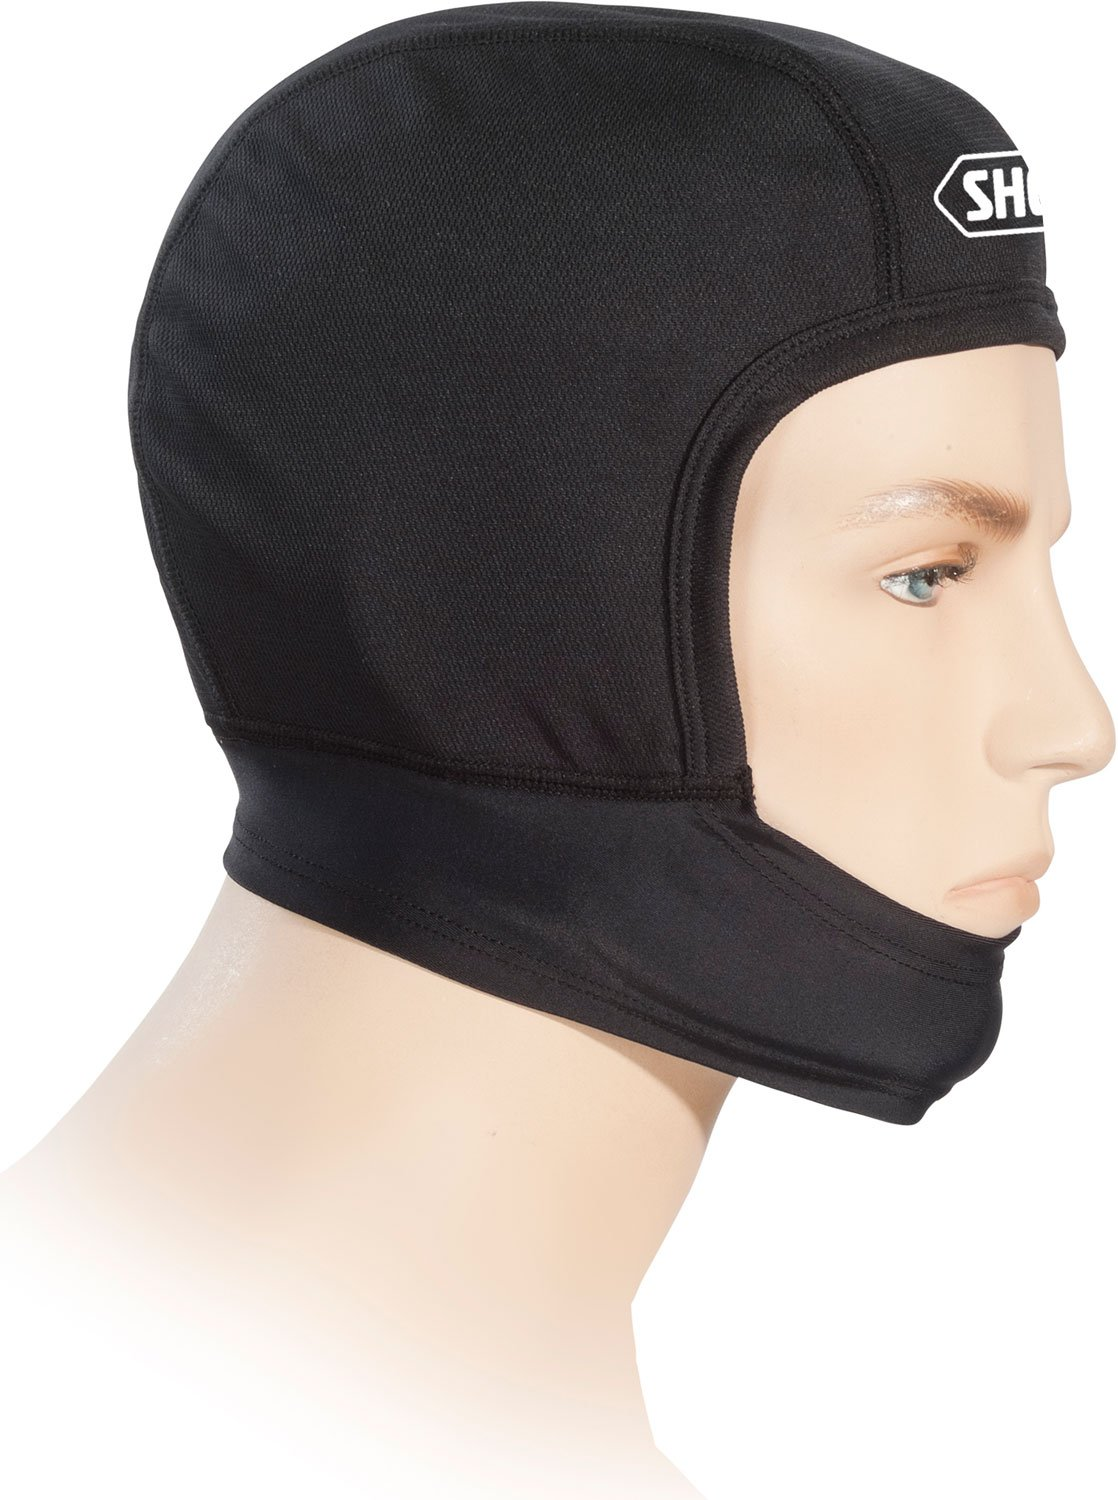 Shoei Full Head Liner Off-Road Helmet Accessories - Black One Size